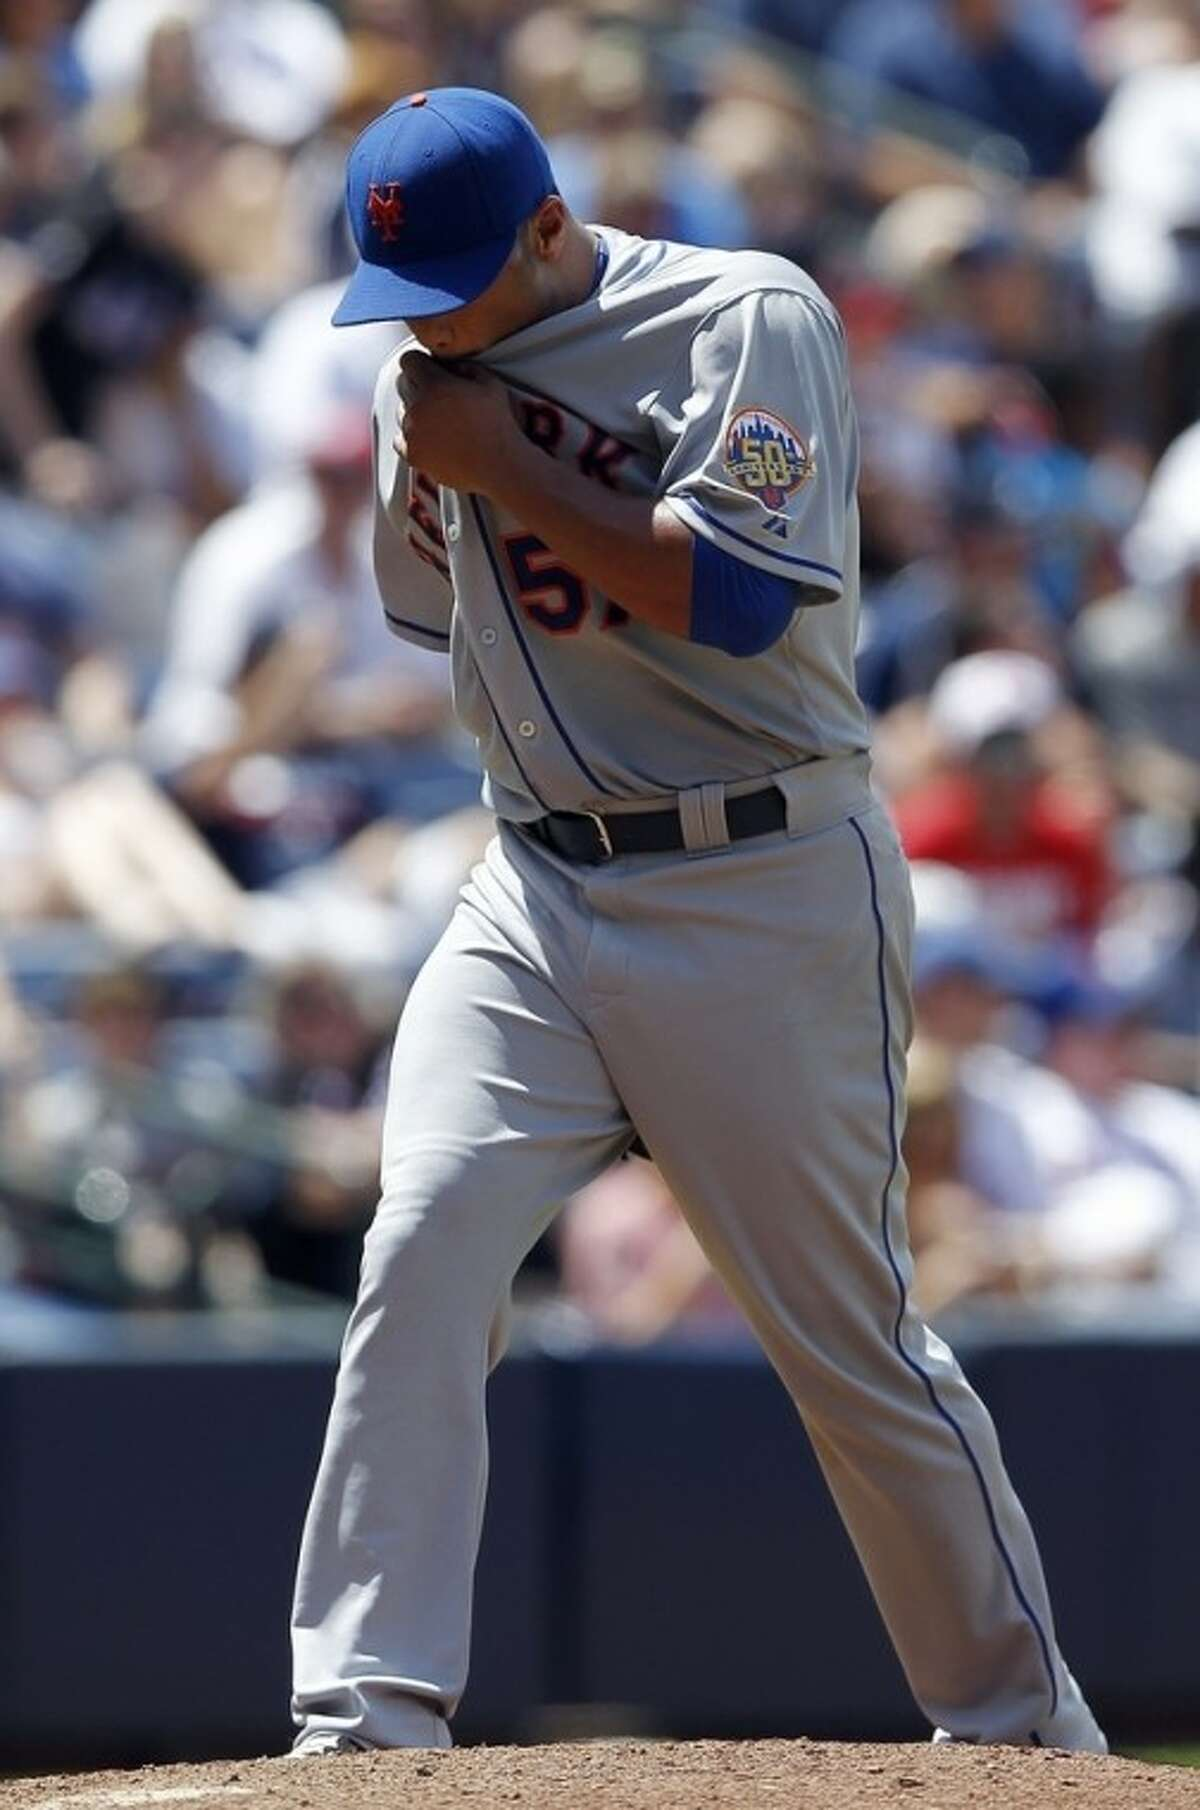 New York Mets starting pitcher Johan Santana paces on the mound after allowing a run in the fifth inning of a baseball game against the Atlanta Braves, Sunday, July 15, 2012, in Atlanta. (AP Photo/John Bazemore)